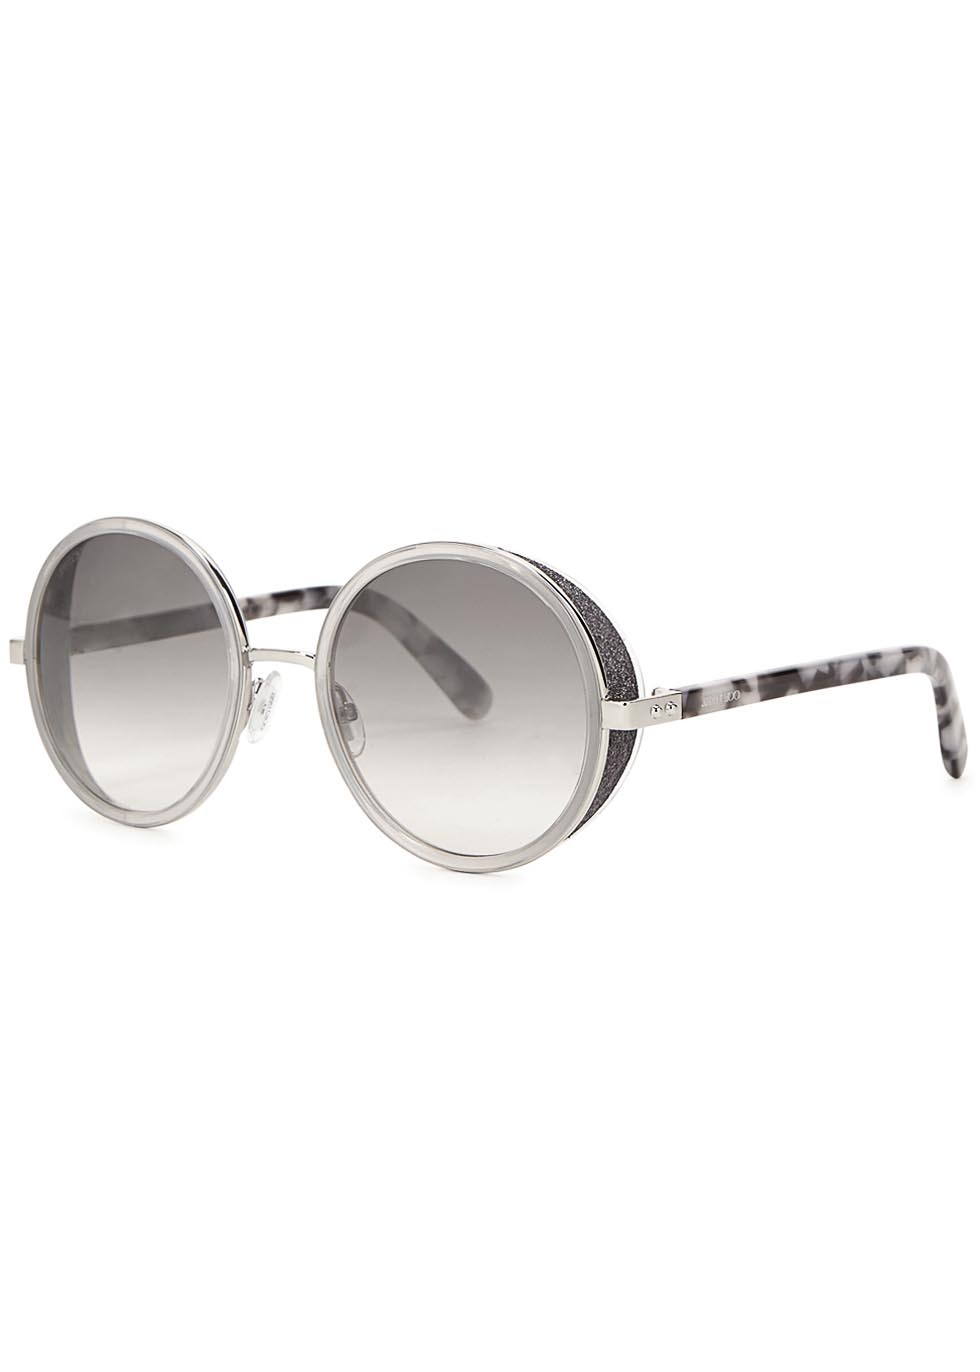 Andie grey mirrored sunglasses - Jimmy Choo